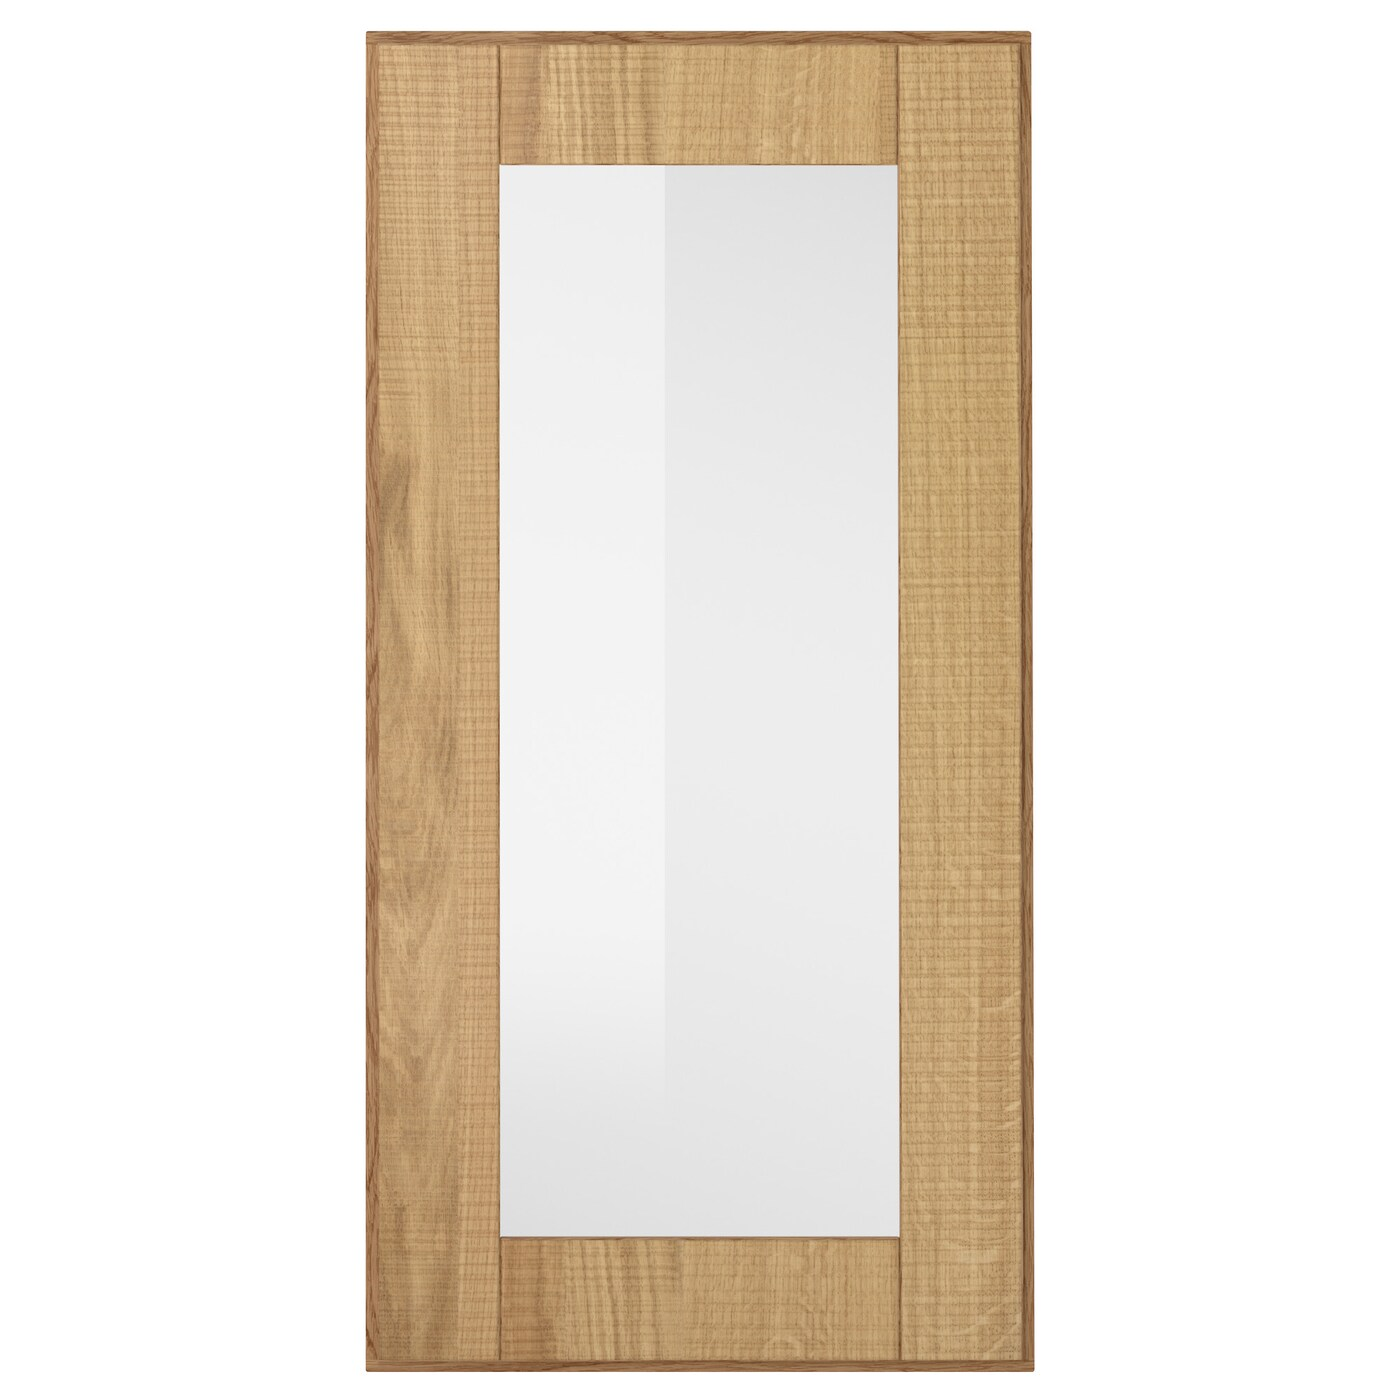 IKEA HYTTAN glass door You can choose to mount the door on the right or left side.